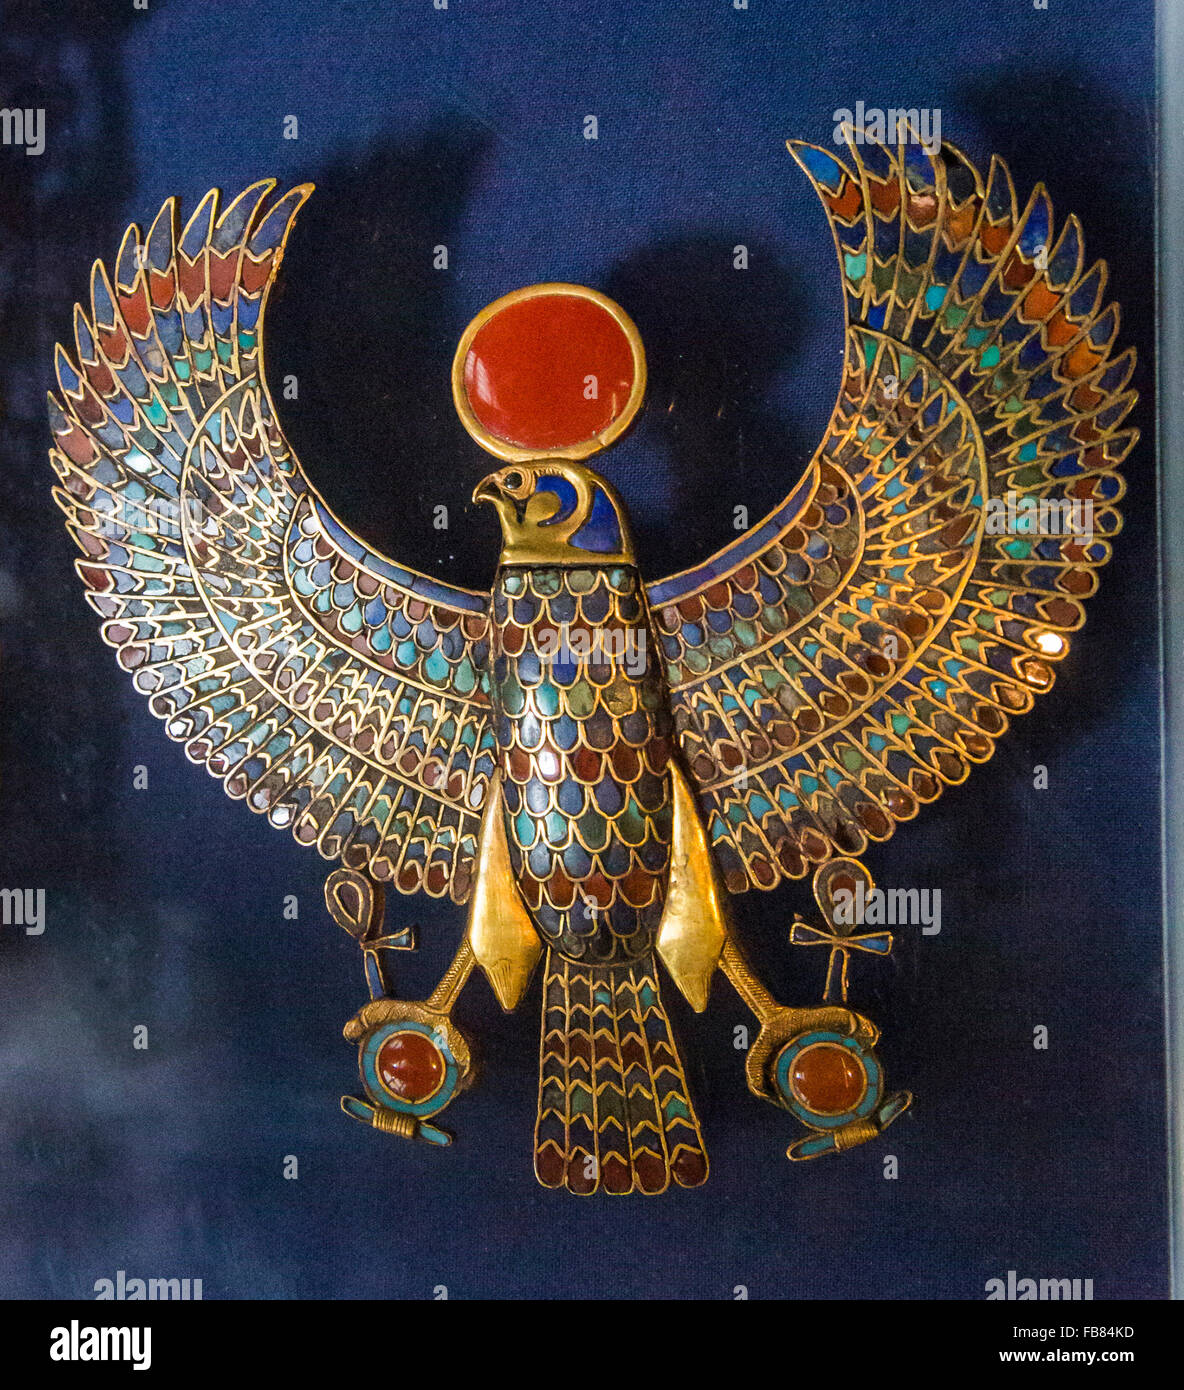 Falcon Pectoral from the tomb of Tutankhamun at the Egyptian Museum, Cairo, Egypt - Stock Image